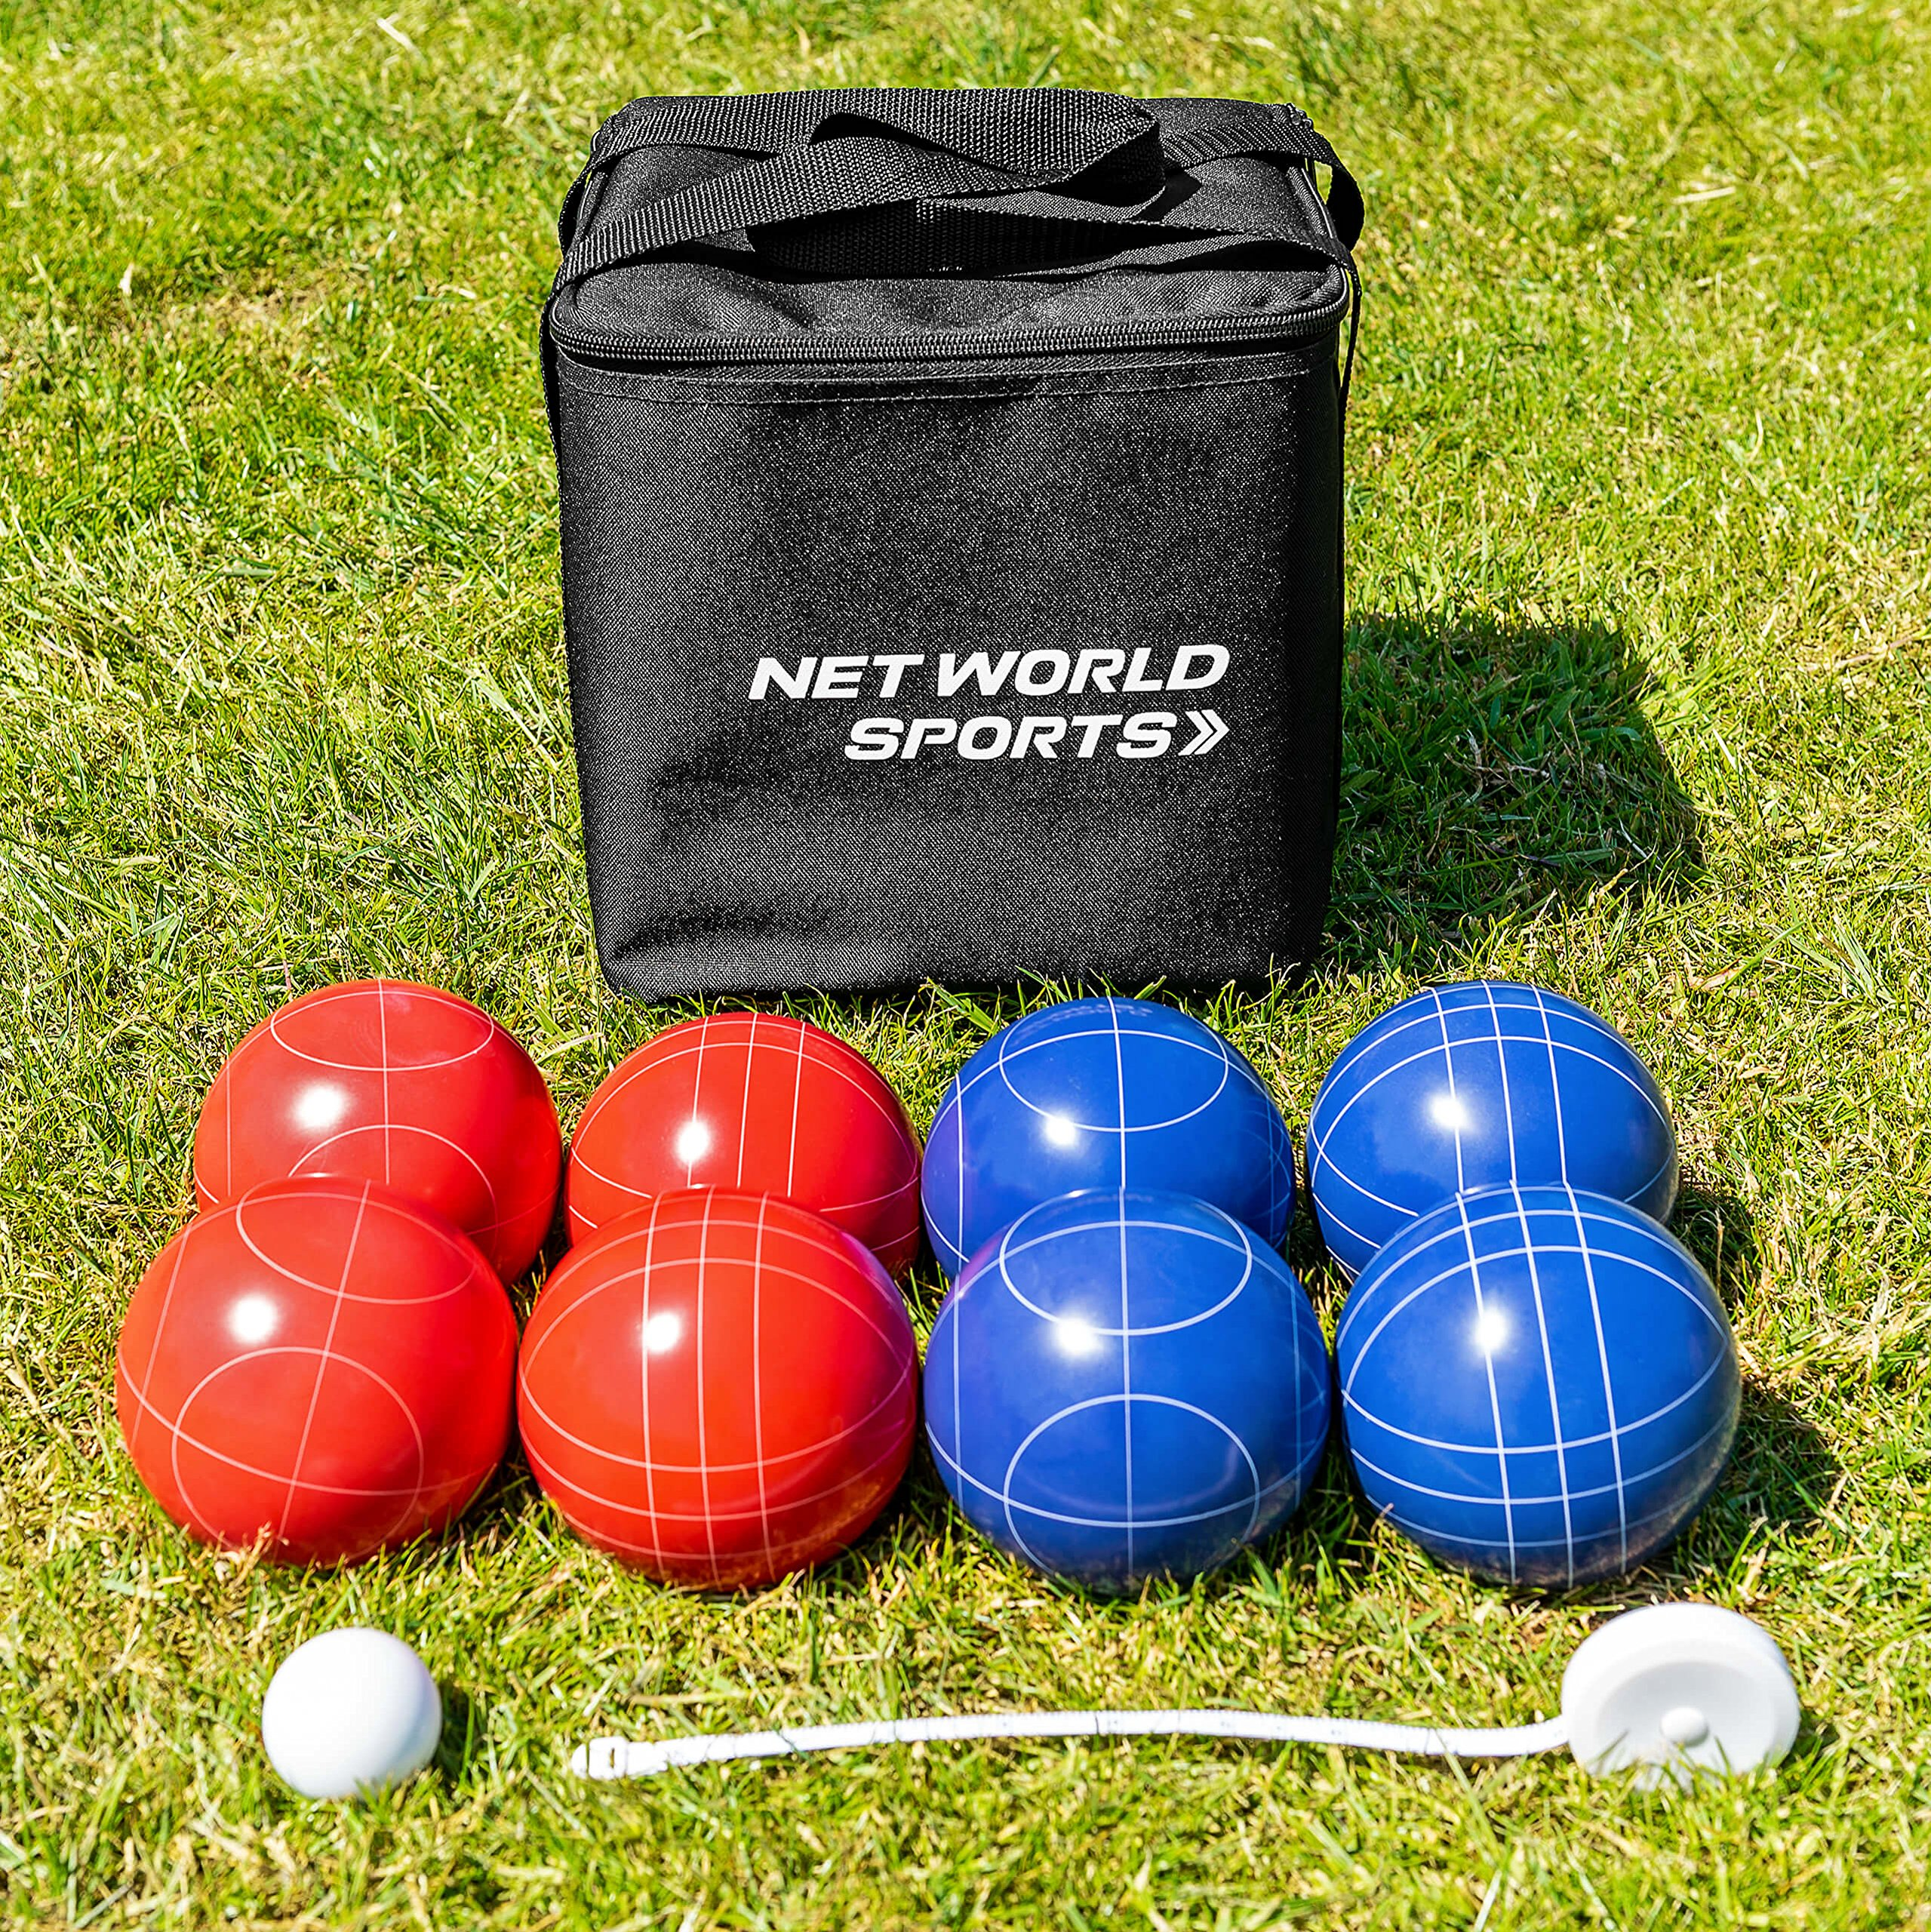 Net World Sports Complete Deluxe Bocce Set - Bocce Ball Set with Measuring Tape and Carry Bag